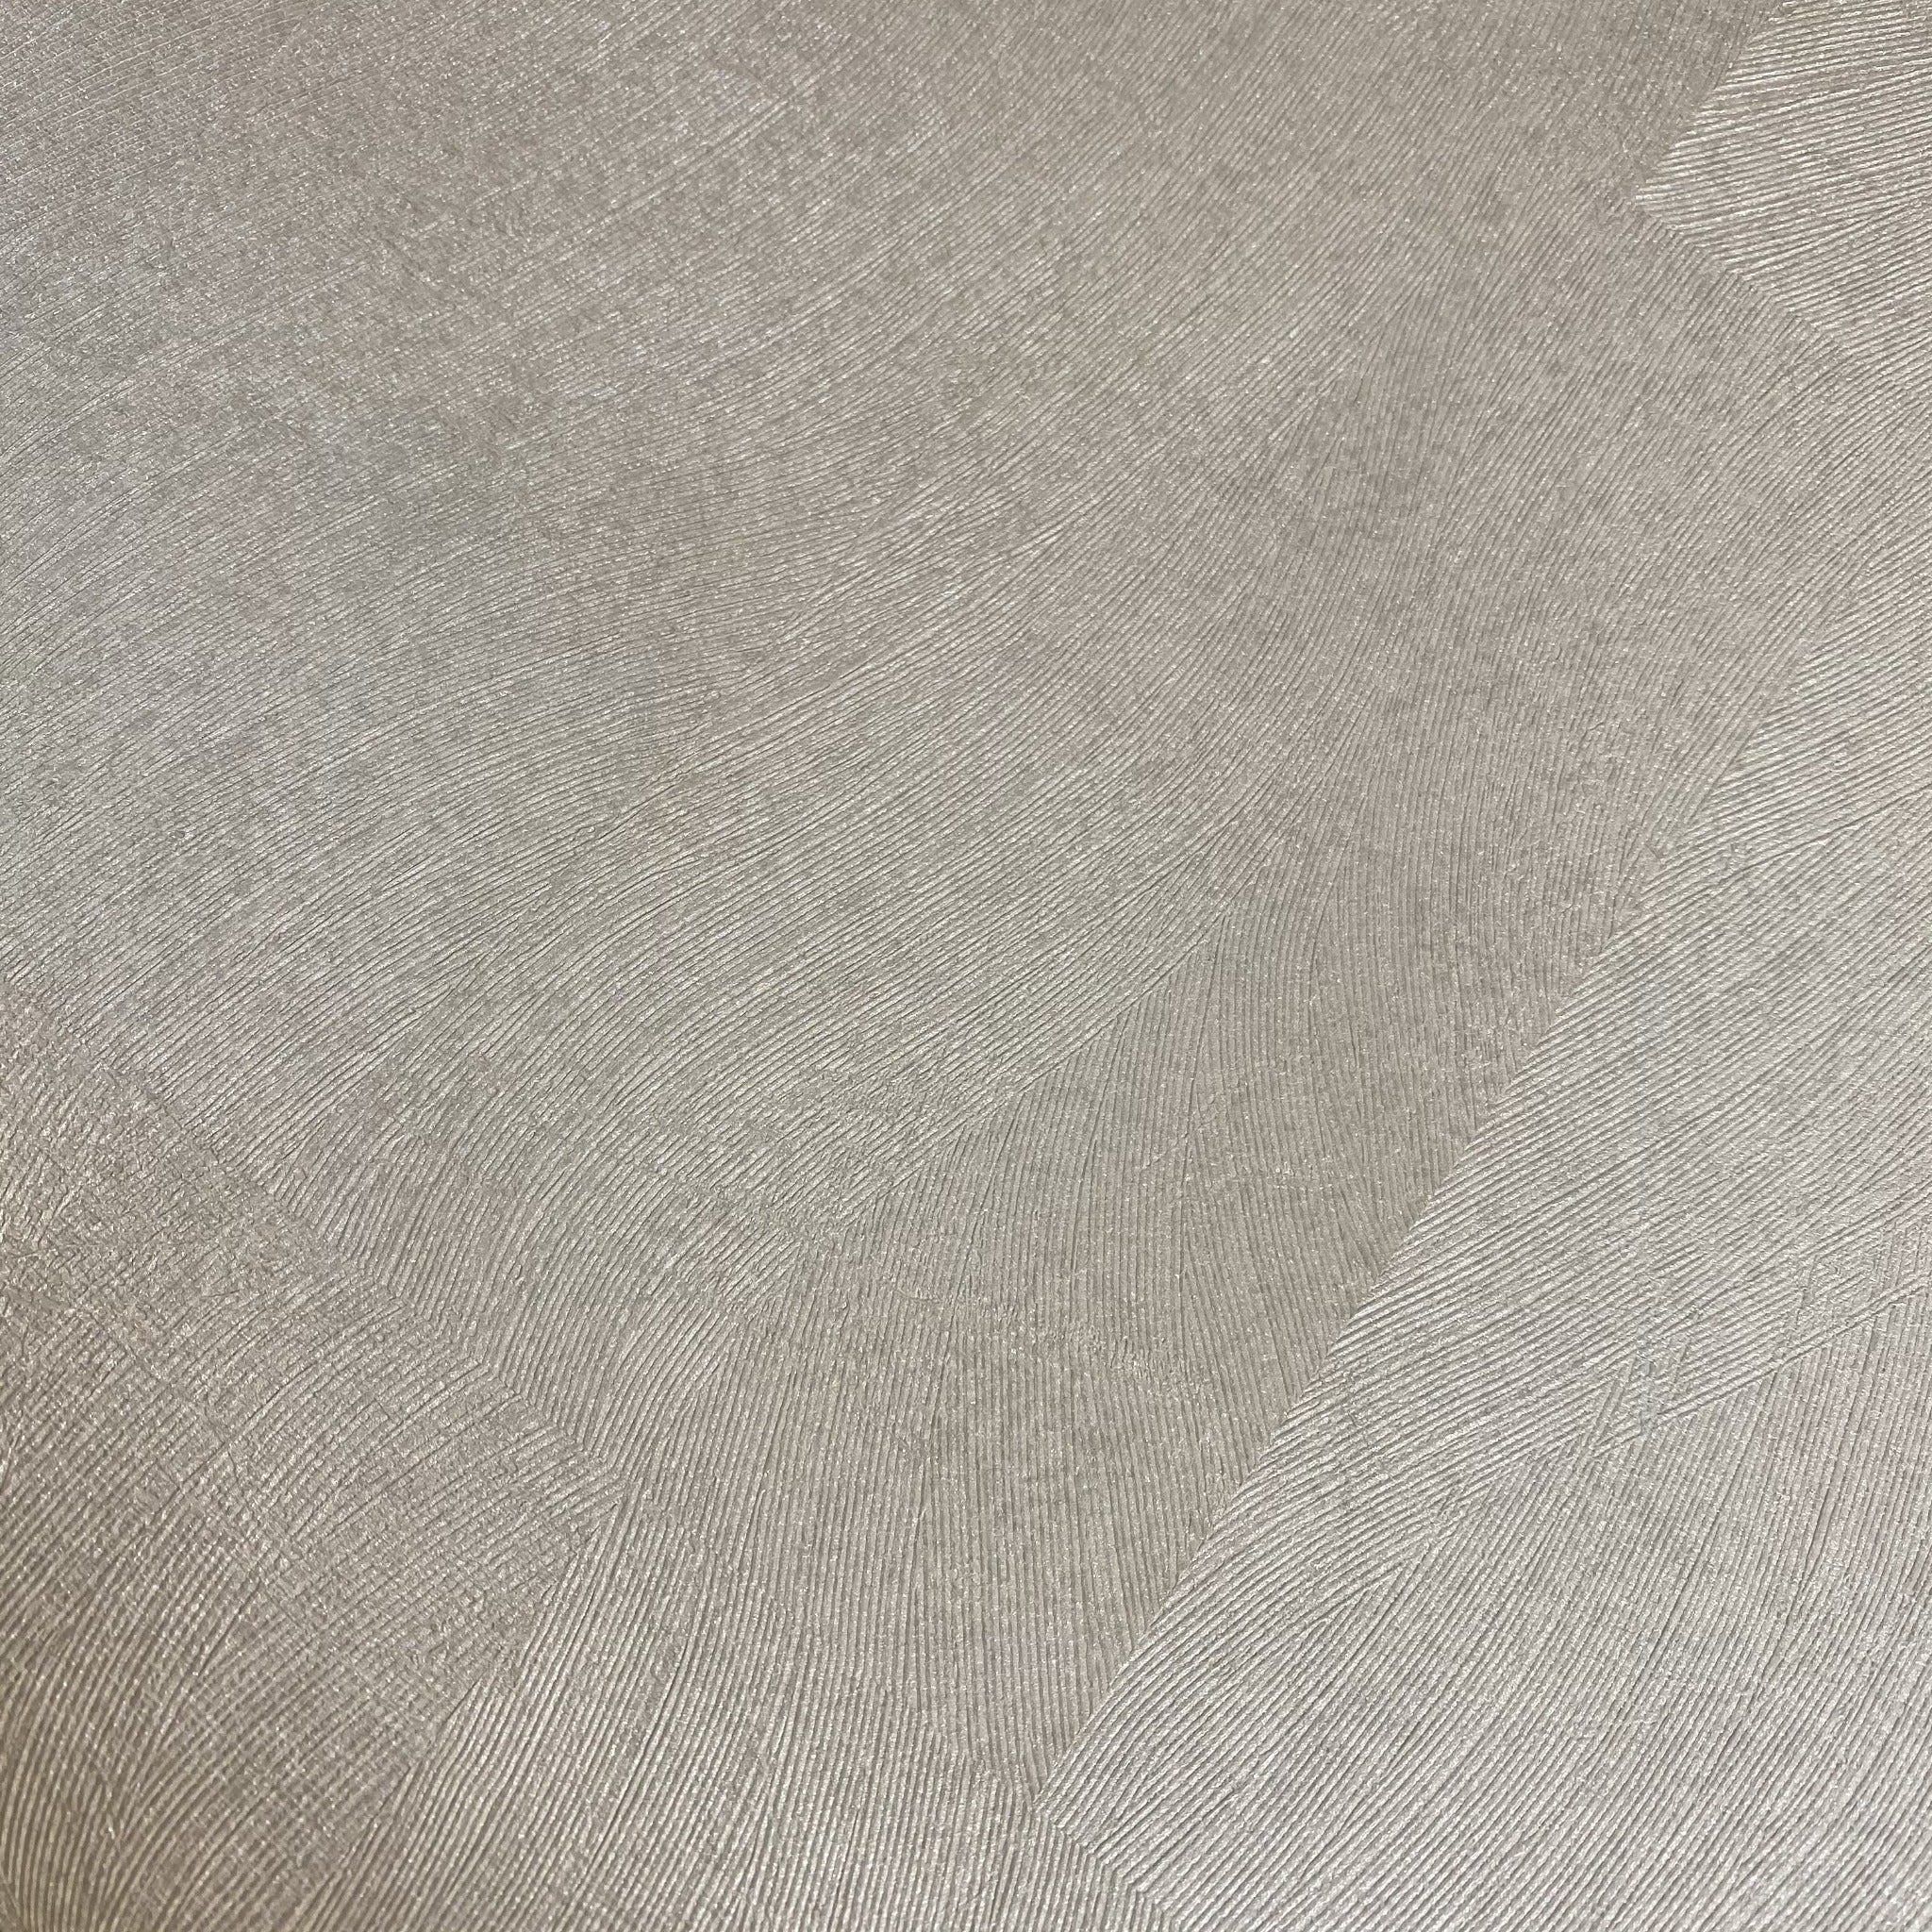 Redia Oyster Panelled Textured Wallpaper